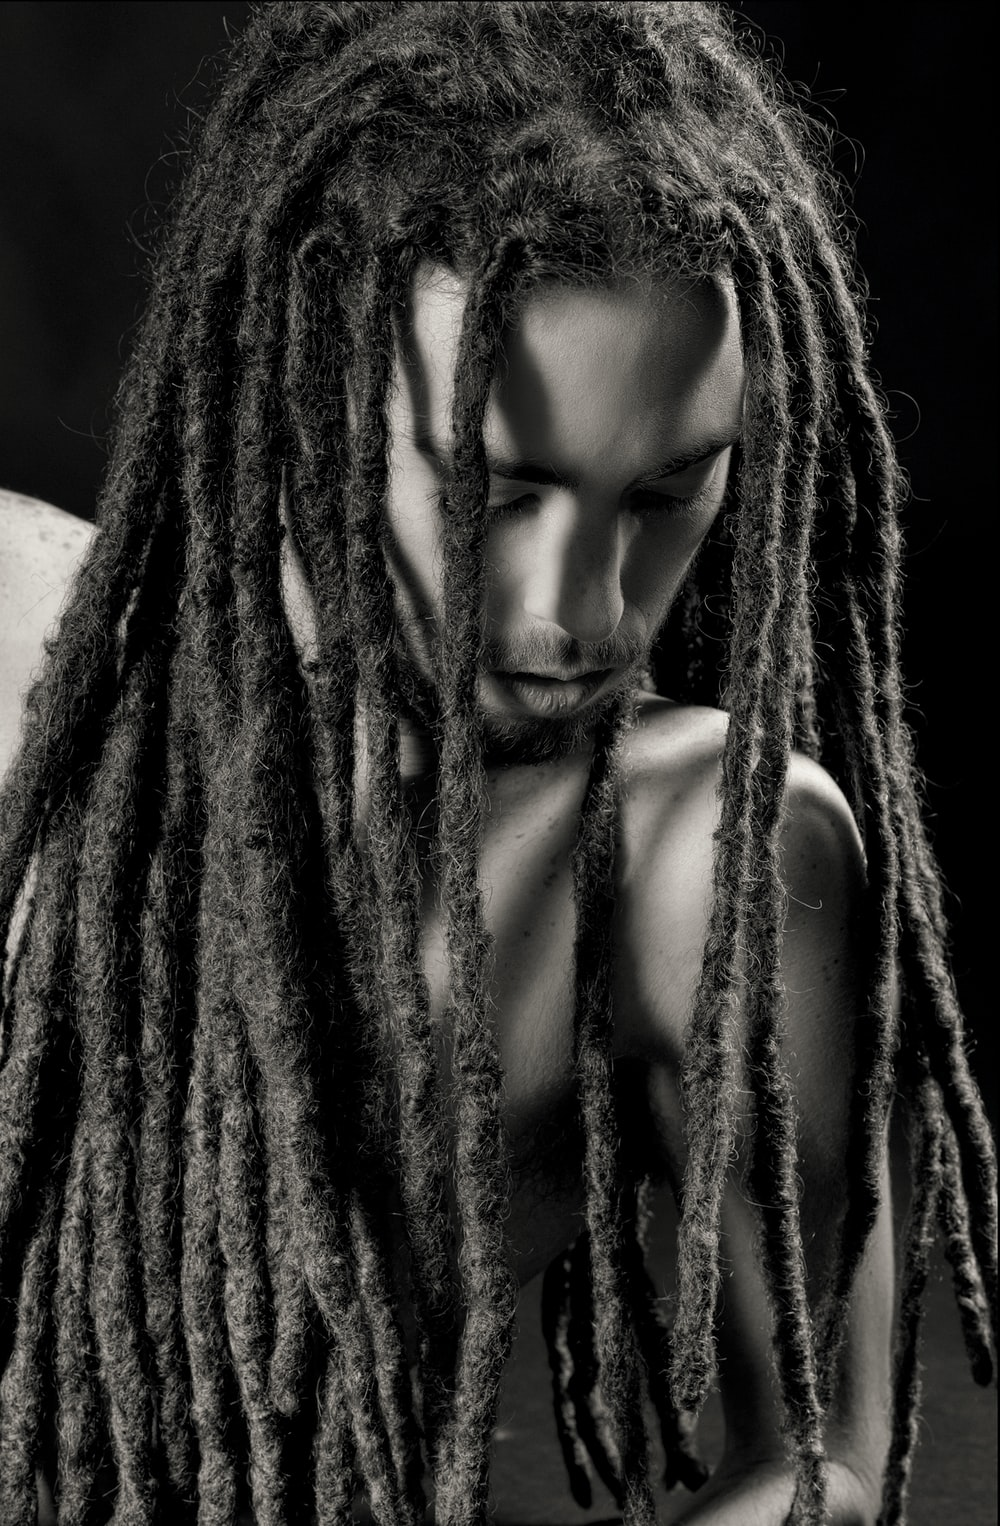 gray scale photo of man with dreadlock hairstyle